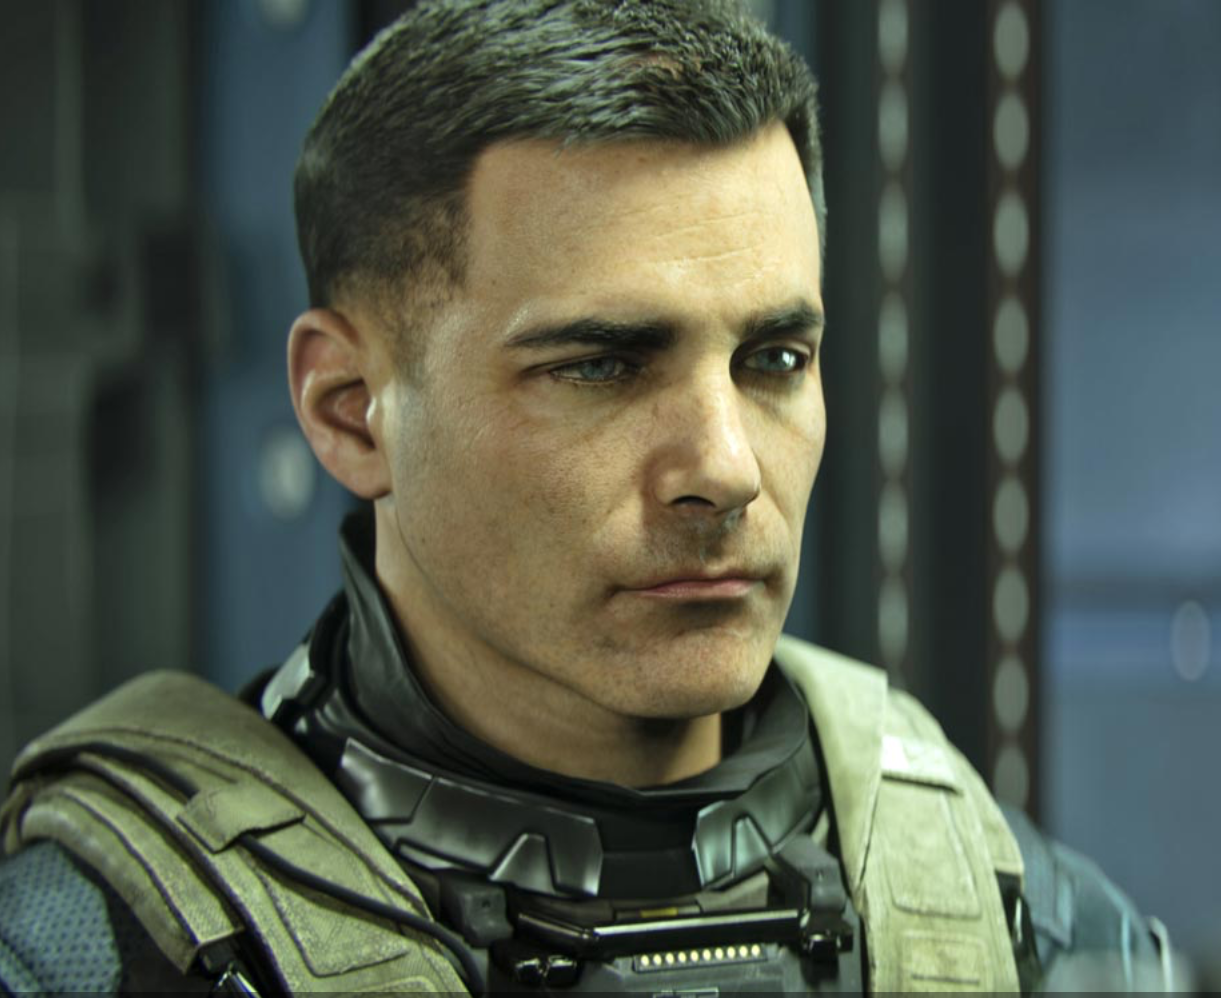 Nick Reyes | Call of Duty Wiki | FANDOM powered by Wikia